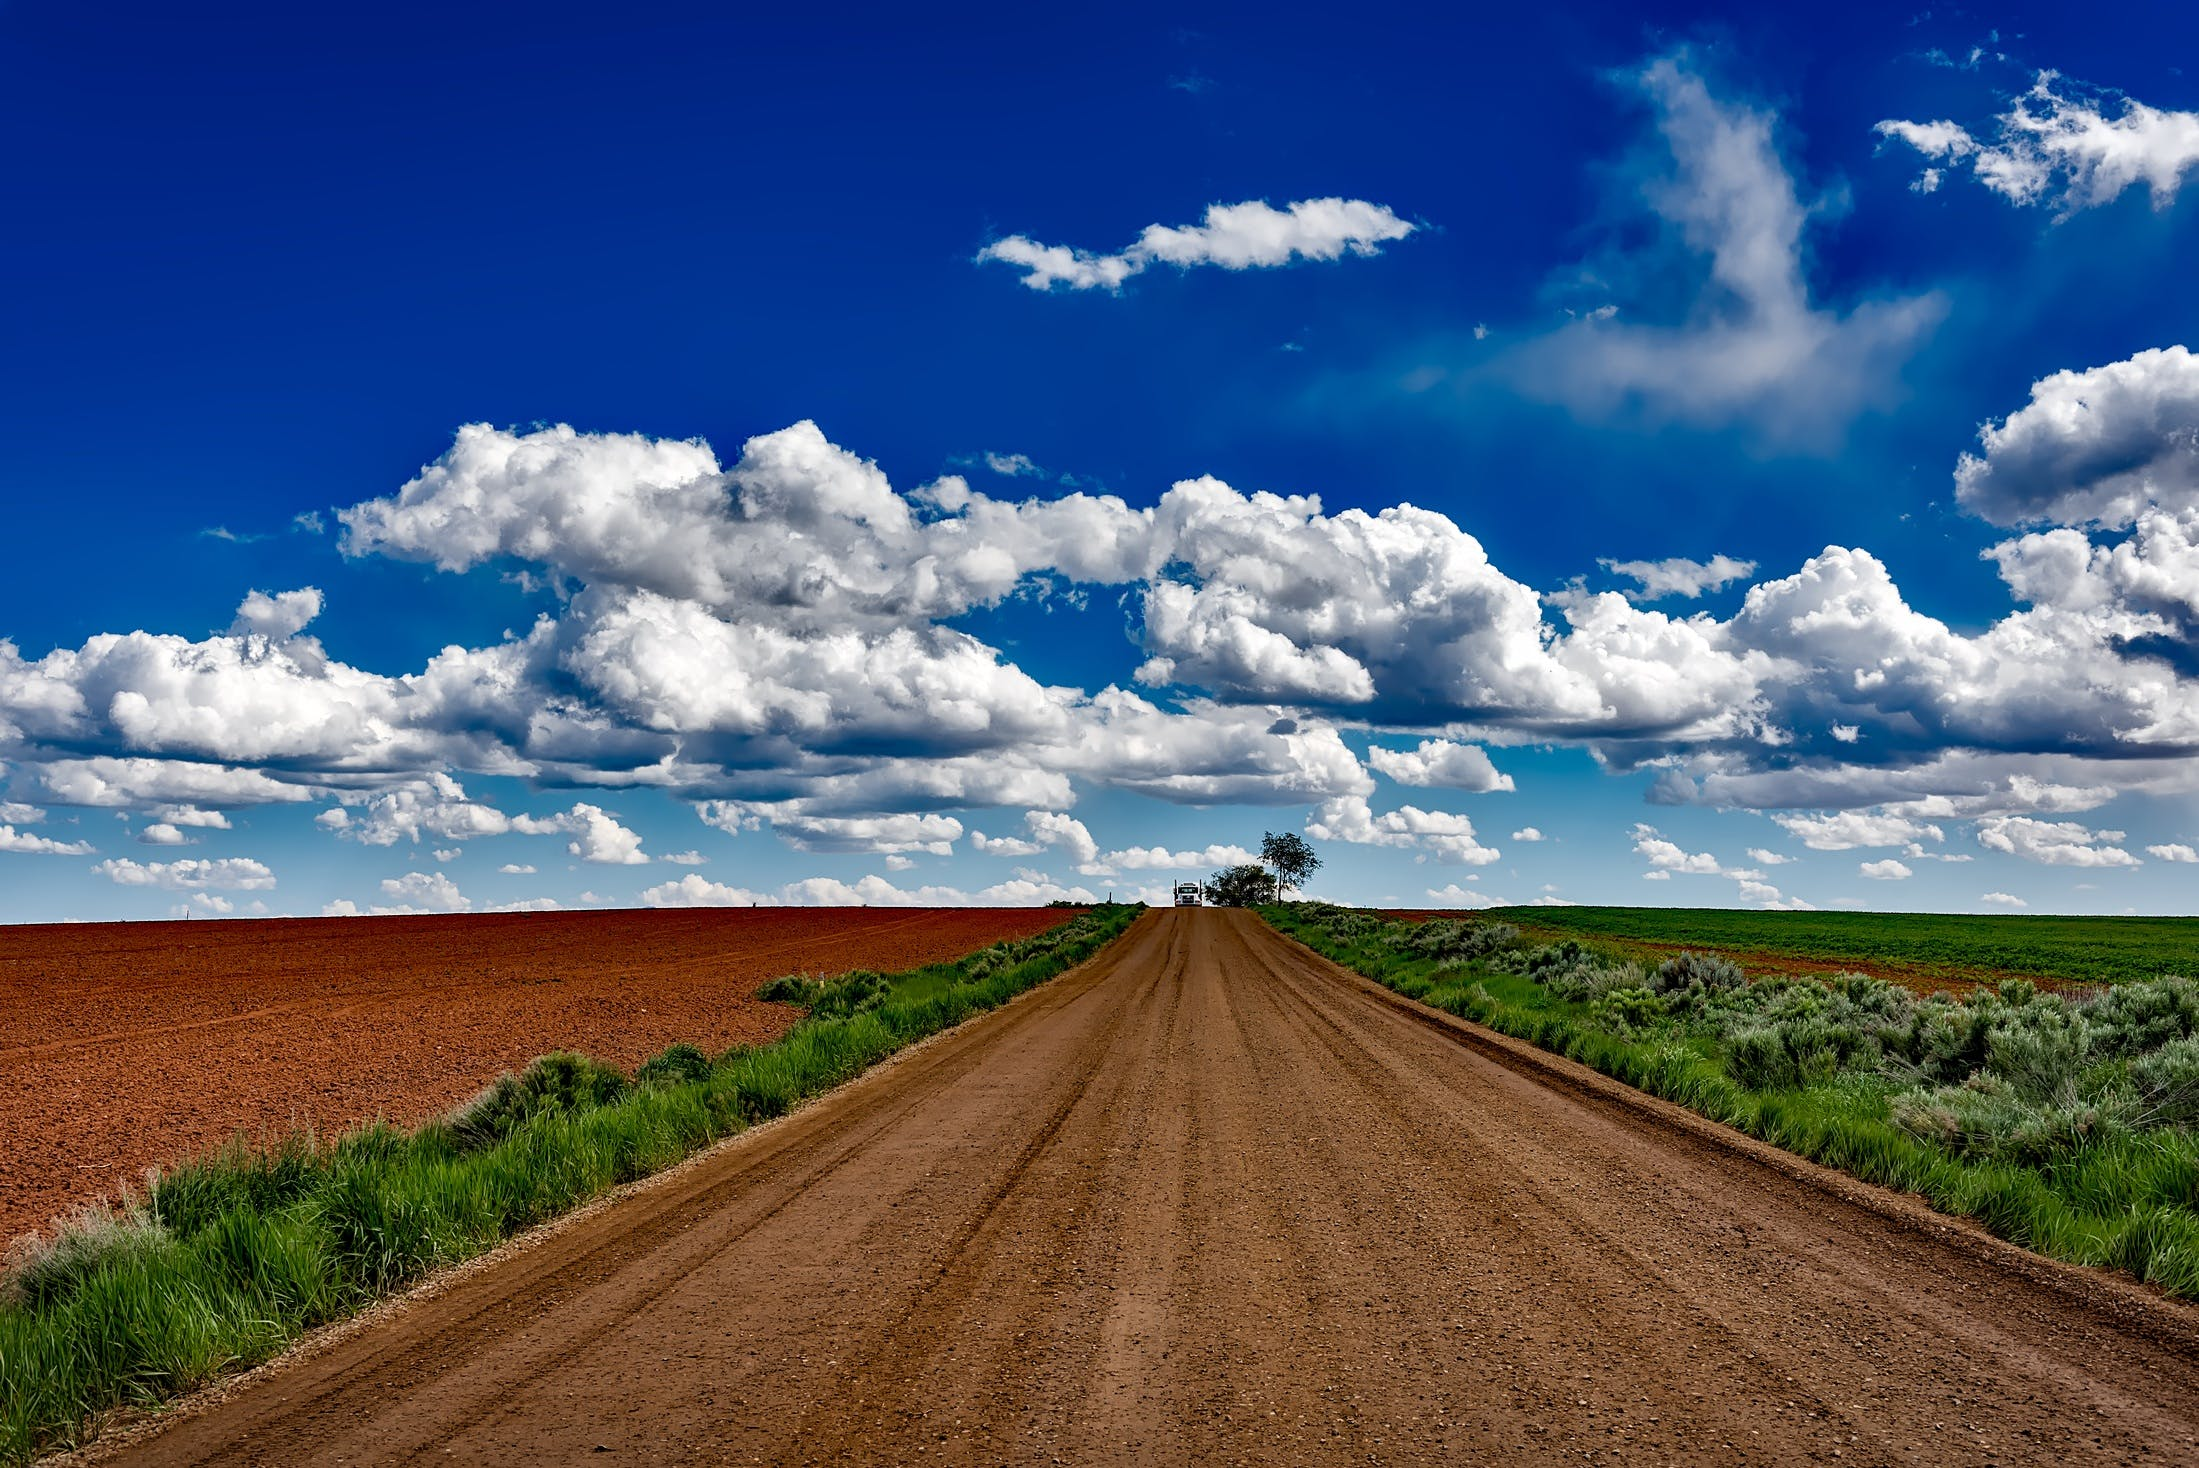 Gray Soil Road Near Field during Daytime Photo